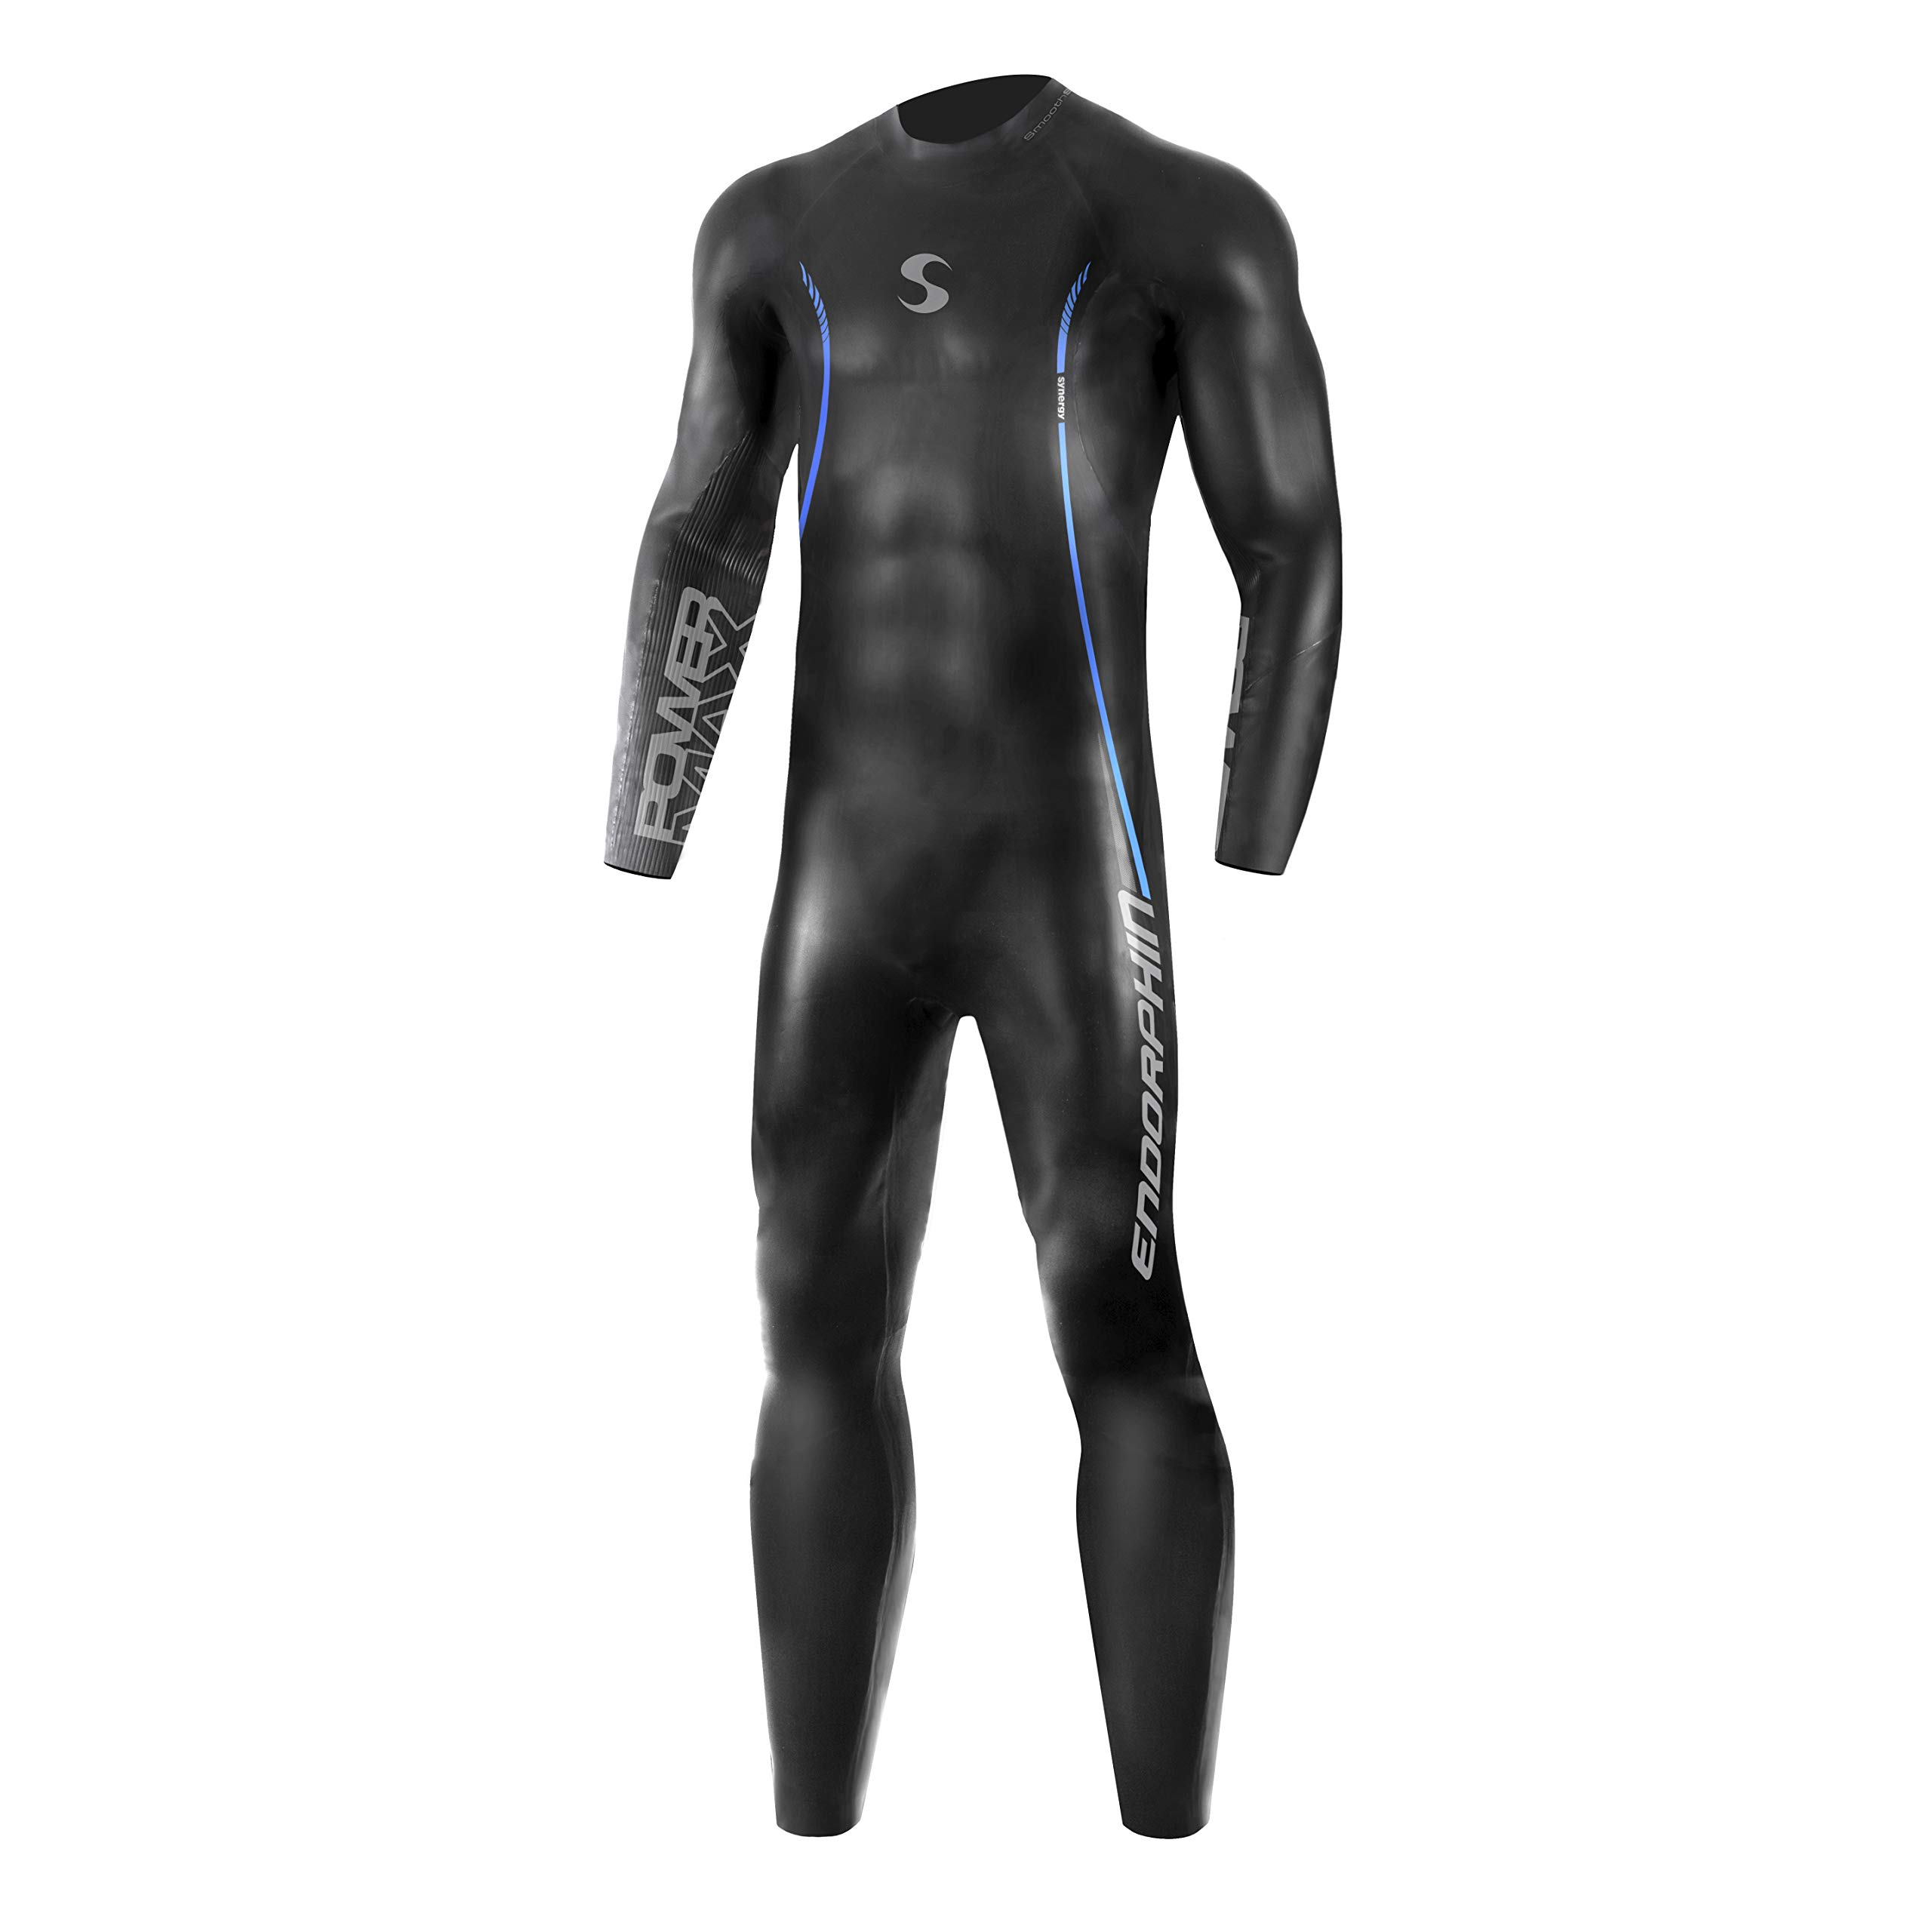 Synergy Endorphin Men's Full Sleeve Triathlon Wetsuit (S1) by Synergy (Image #1)